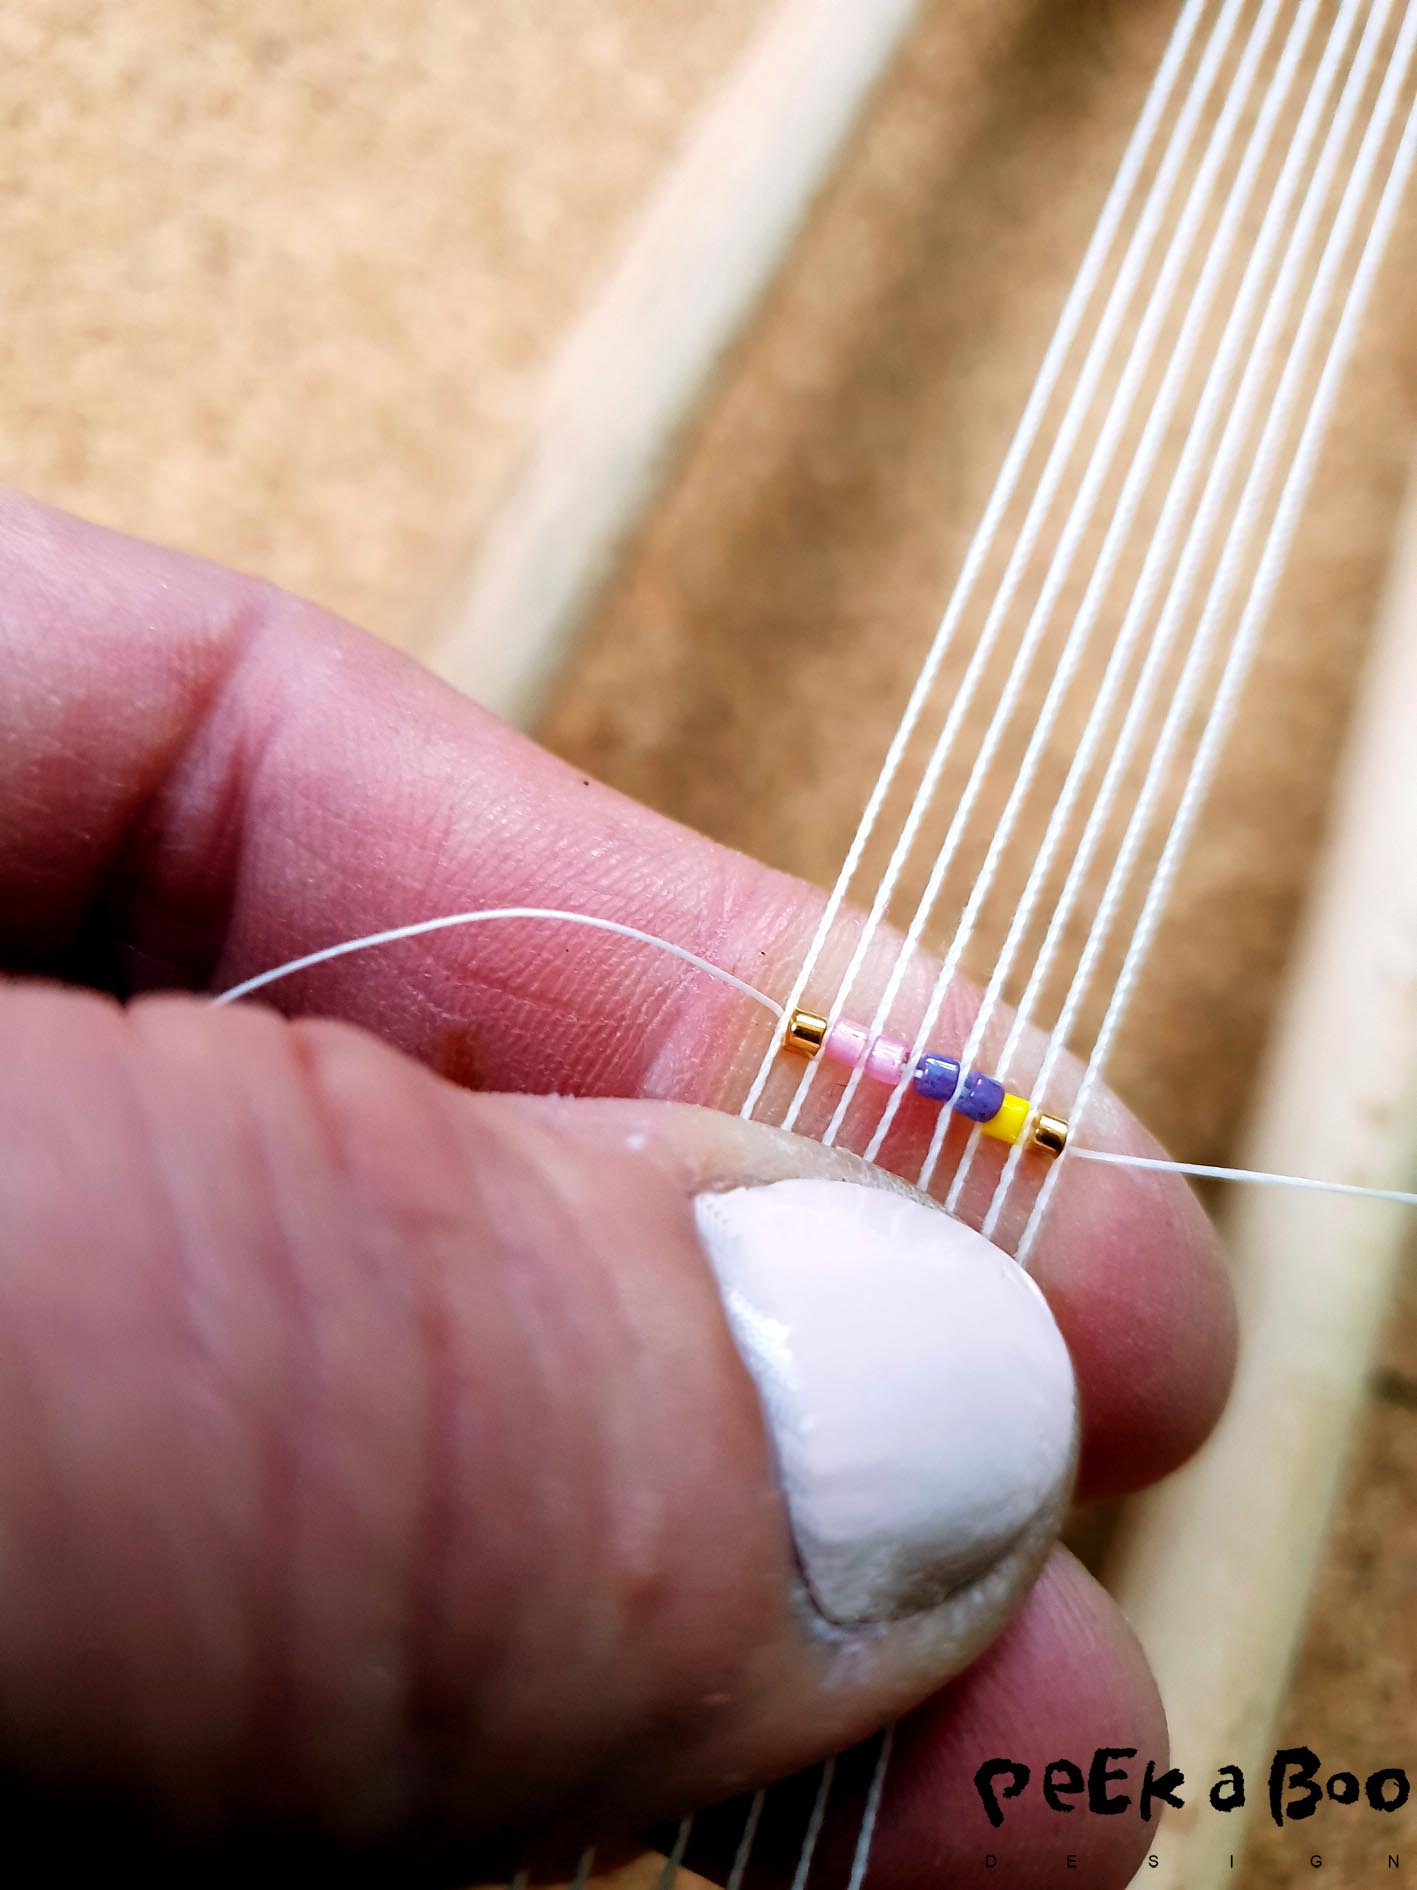 Put your first row of beads on your needle, hold them underneath the threads on the loom. So there is one pearl between each thread. Hold them against the threads with one finger. Then pull the thread and needle through